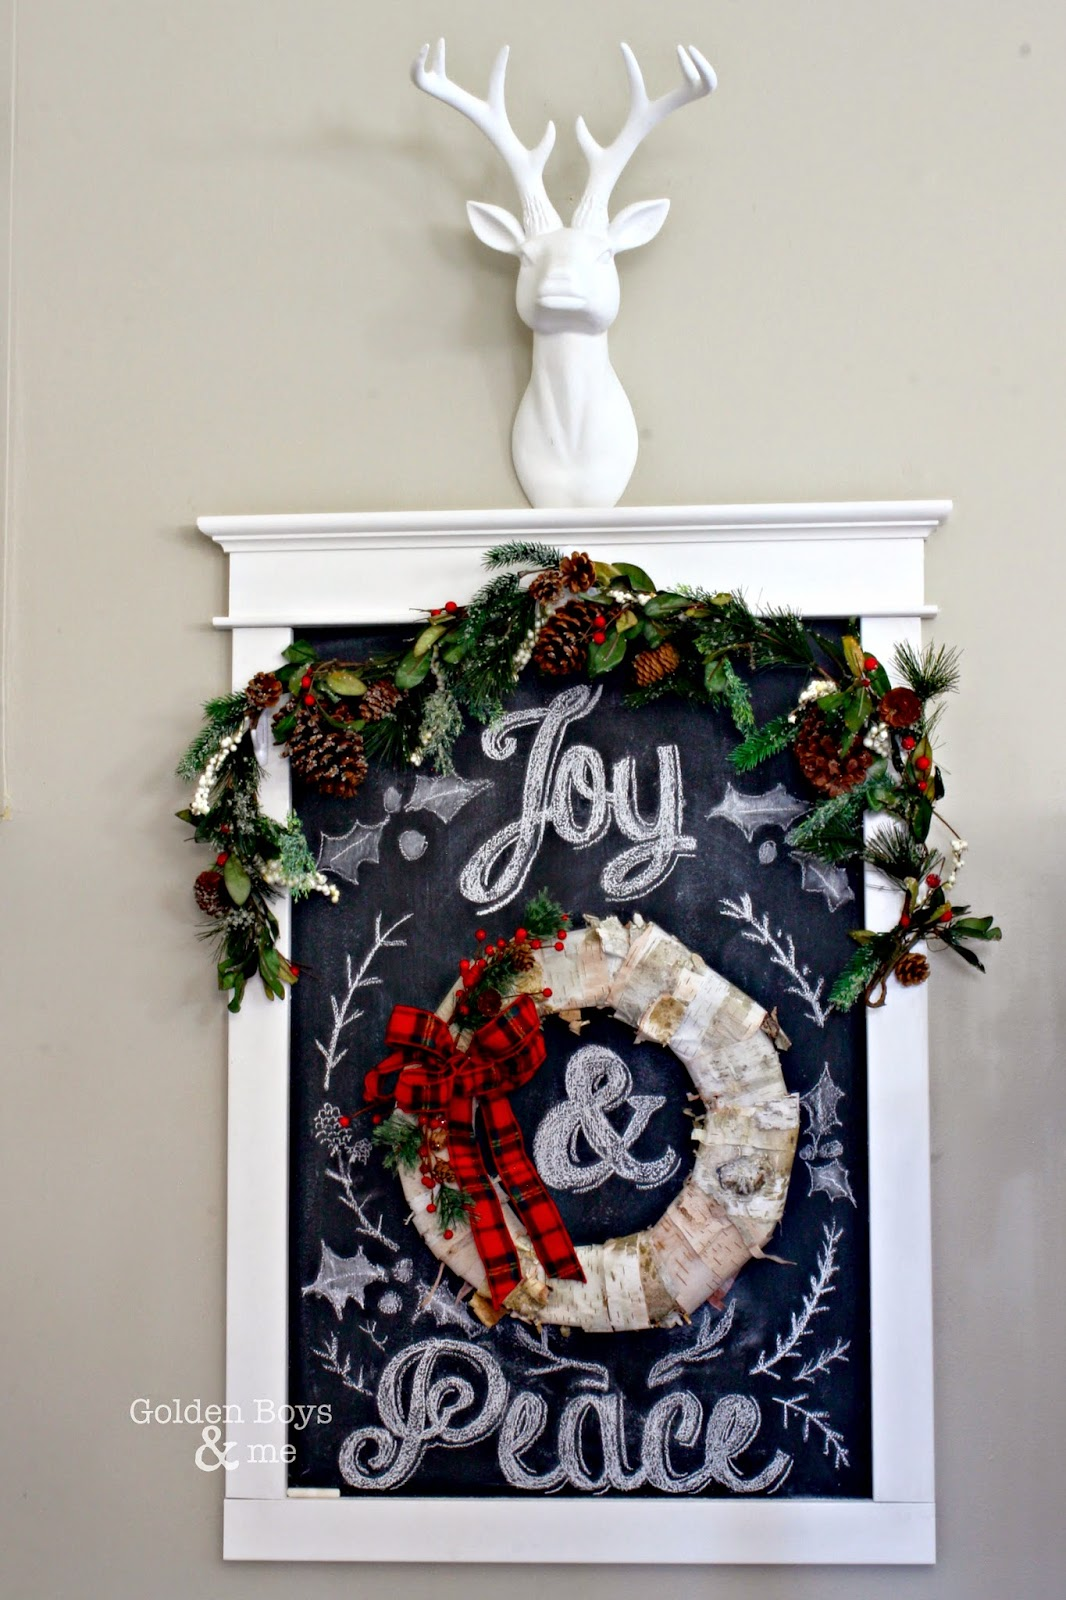 Christmas chalkboard art with wreath on DIY chalkboard-www.goldenboysandme.com